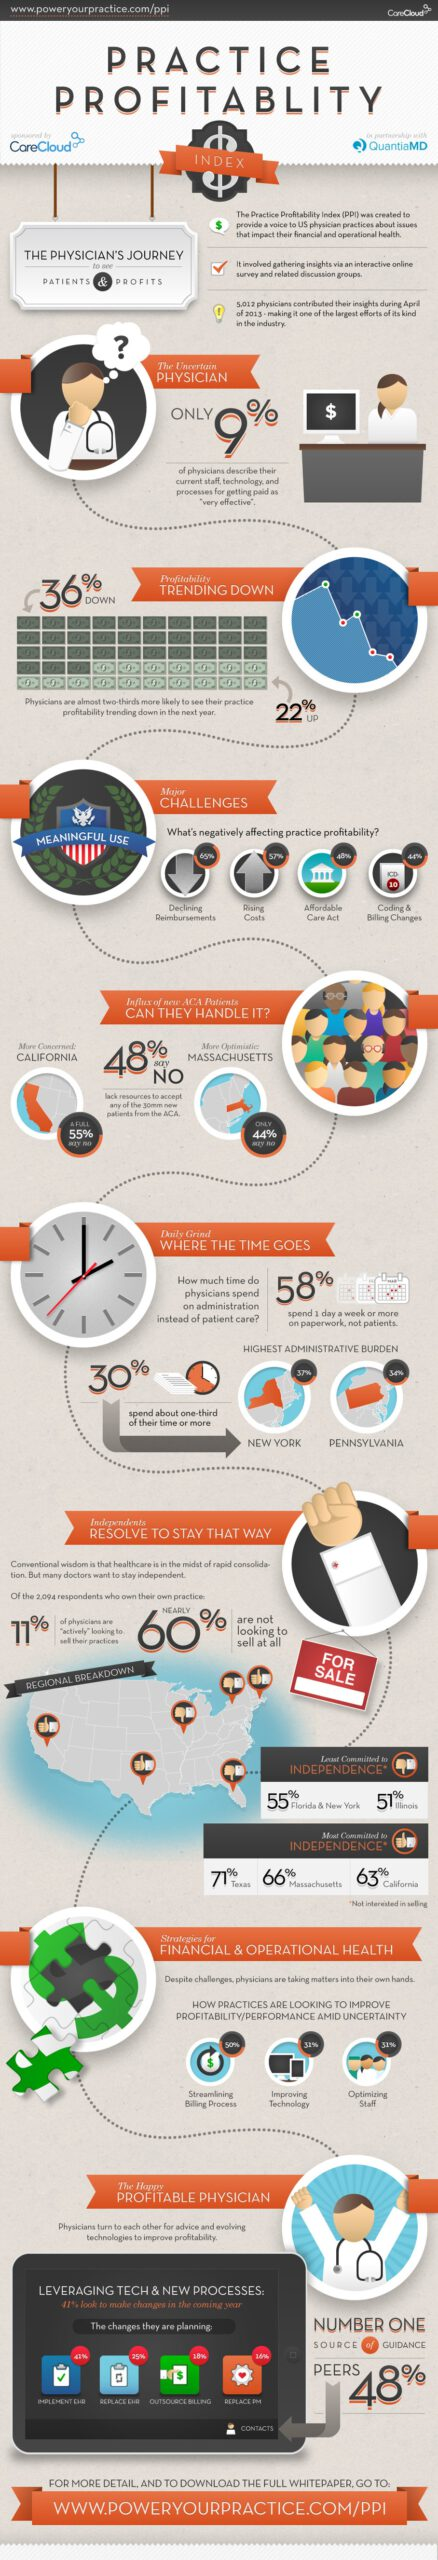 Infographic: Can Physicians Practices Remain Profitable?